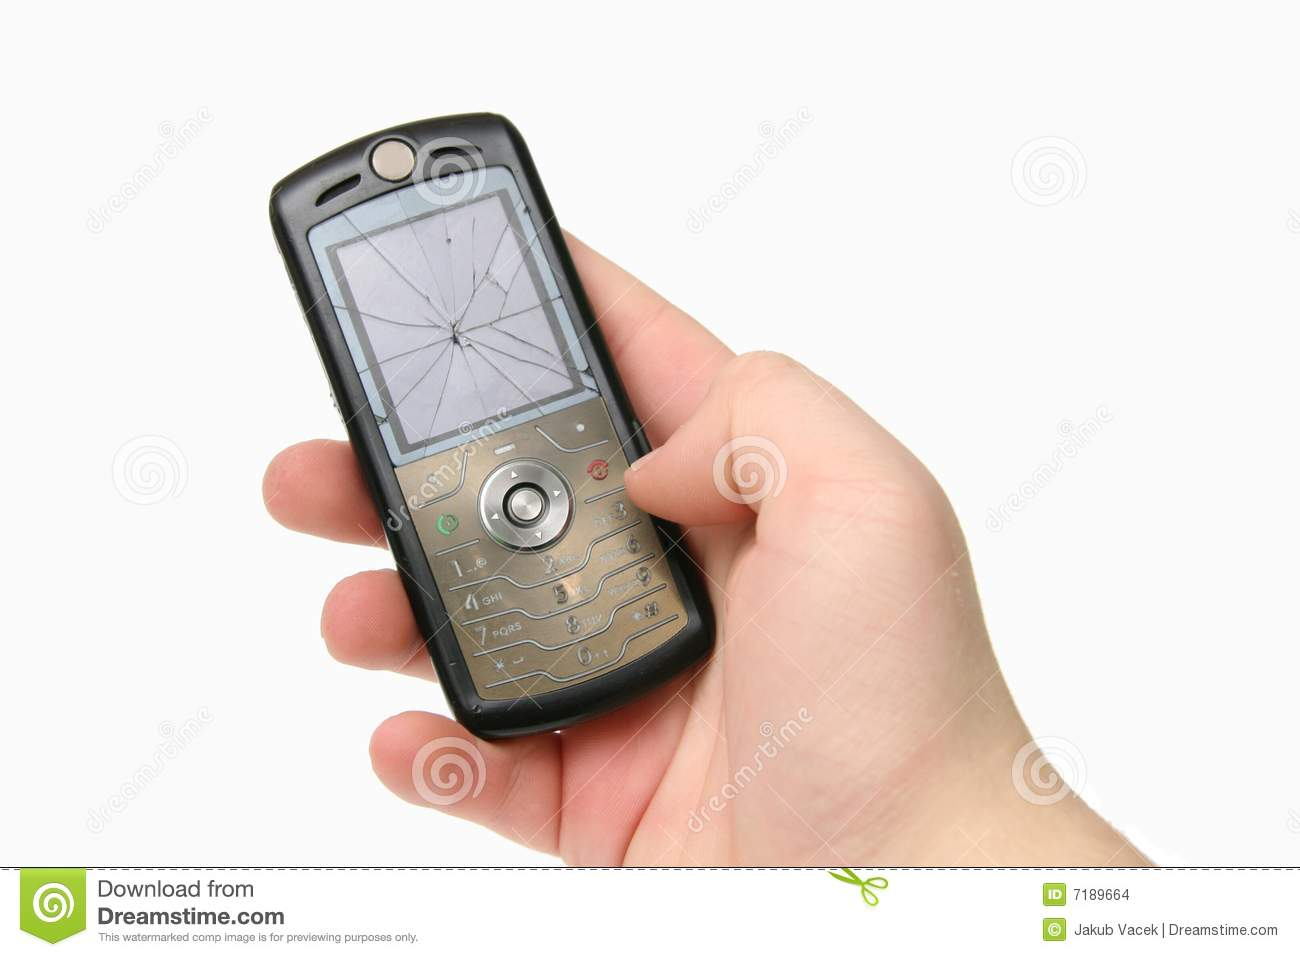 Broken mobile phone with cracked display in hand